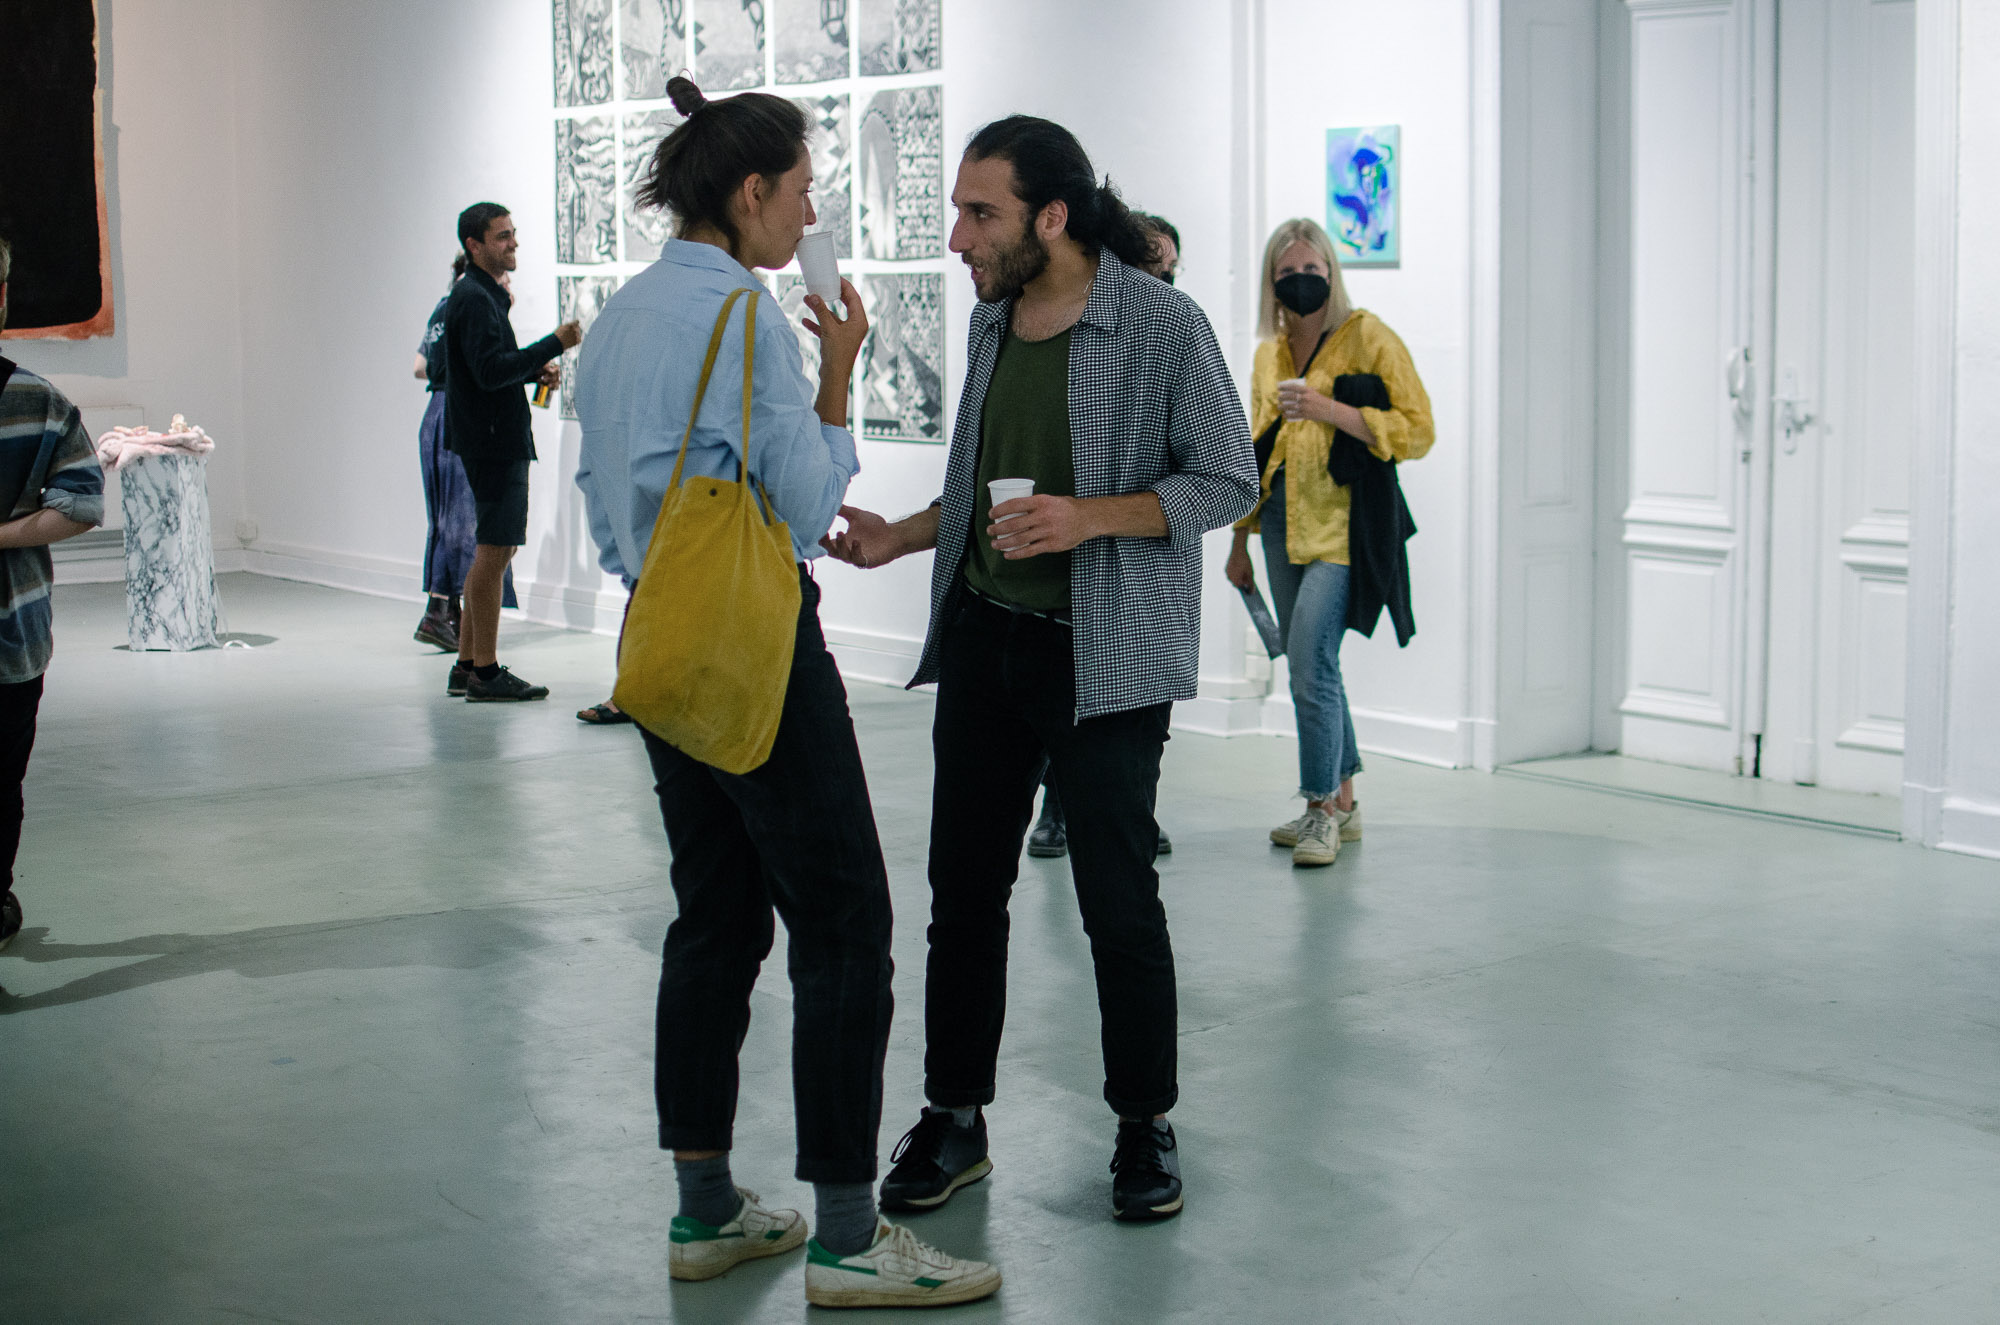 PKRD-48-Airy-Democratic-Spirituality-vernissage-PK-at-Alte-Handlesschule-20.08.21-Fanni-Papp-for-PK-22